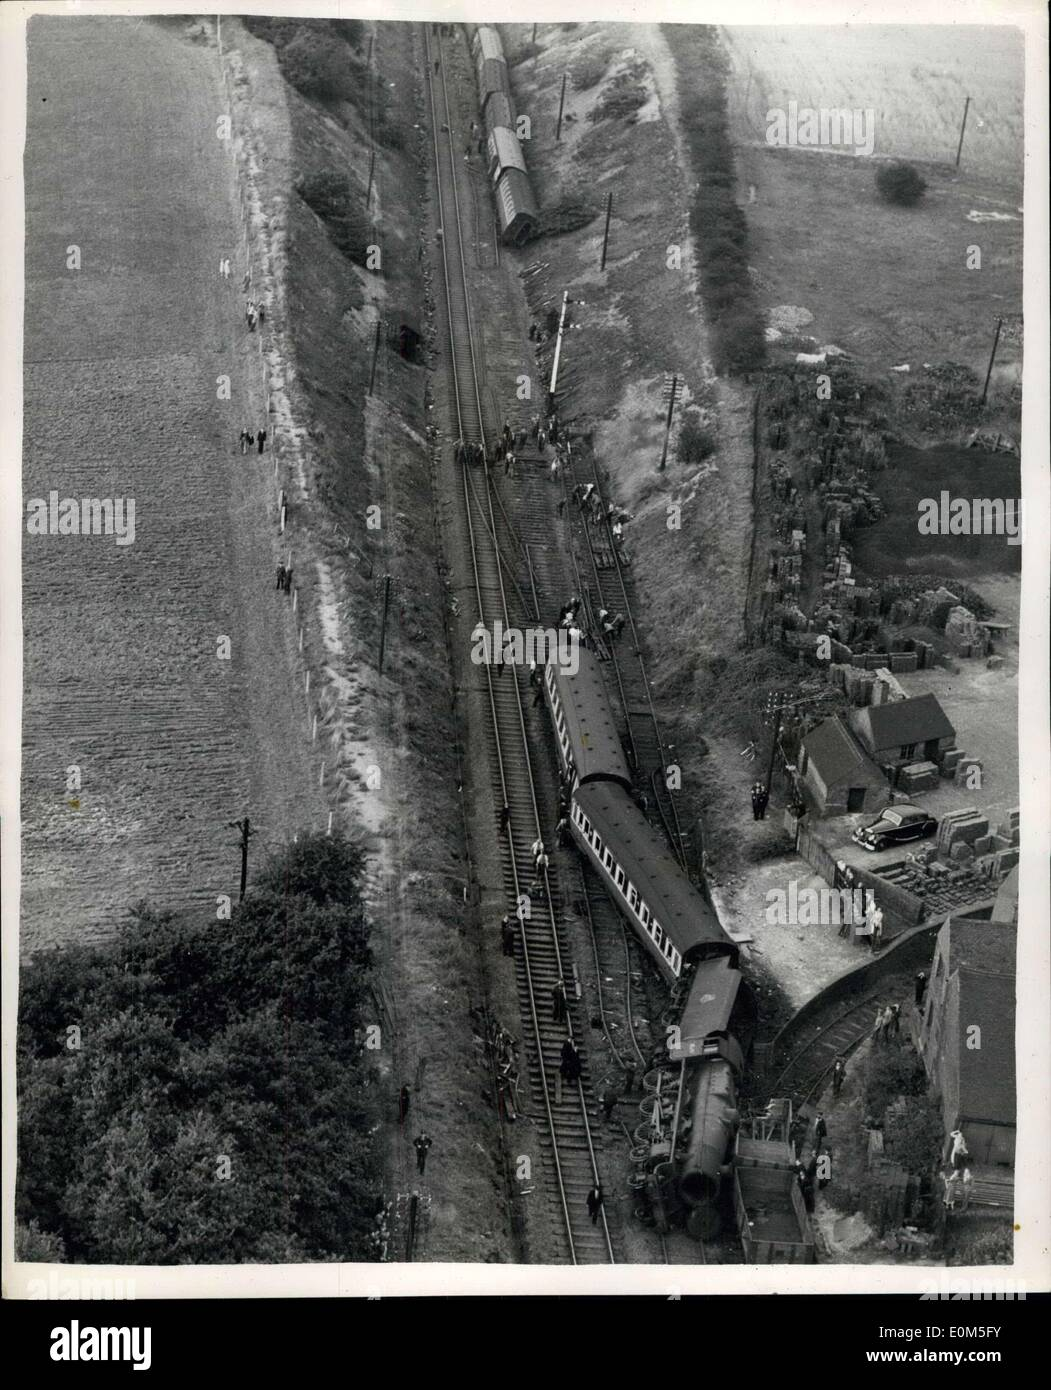 Aug. 17, 1953 - A New Rail Crash - Express Splits In Two: The steep sides of a cutting prevented the coaches overturning and averted serious casualties when an express broke in two and was derailed while travelling at 60 m.p.h., at Kingsbury, near Tamworth, Staffordshire, yesterday. There were 366 passengers aboard the 9.28 a.m. from Bradford to Bristol as it hurtled through the cutting which has steep banks 25-ft high on each side. The train began to away, than the engine and tender healed over and left the track, dragging the first two coaches with them - Stock Image